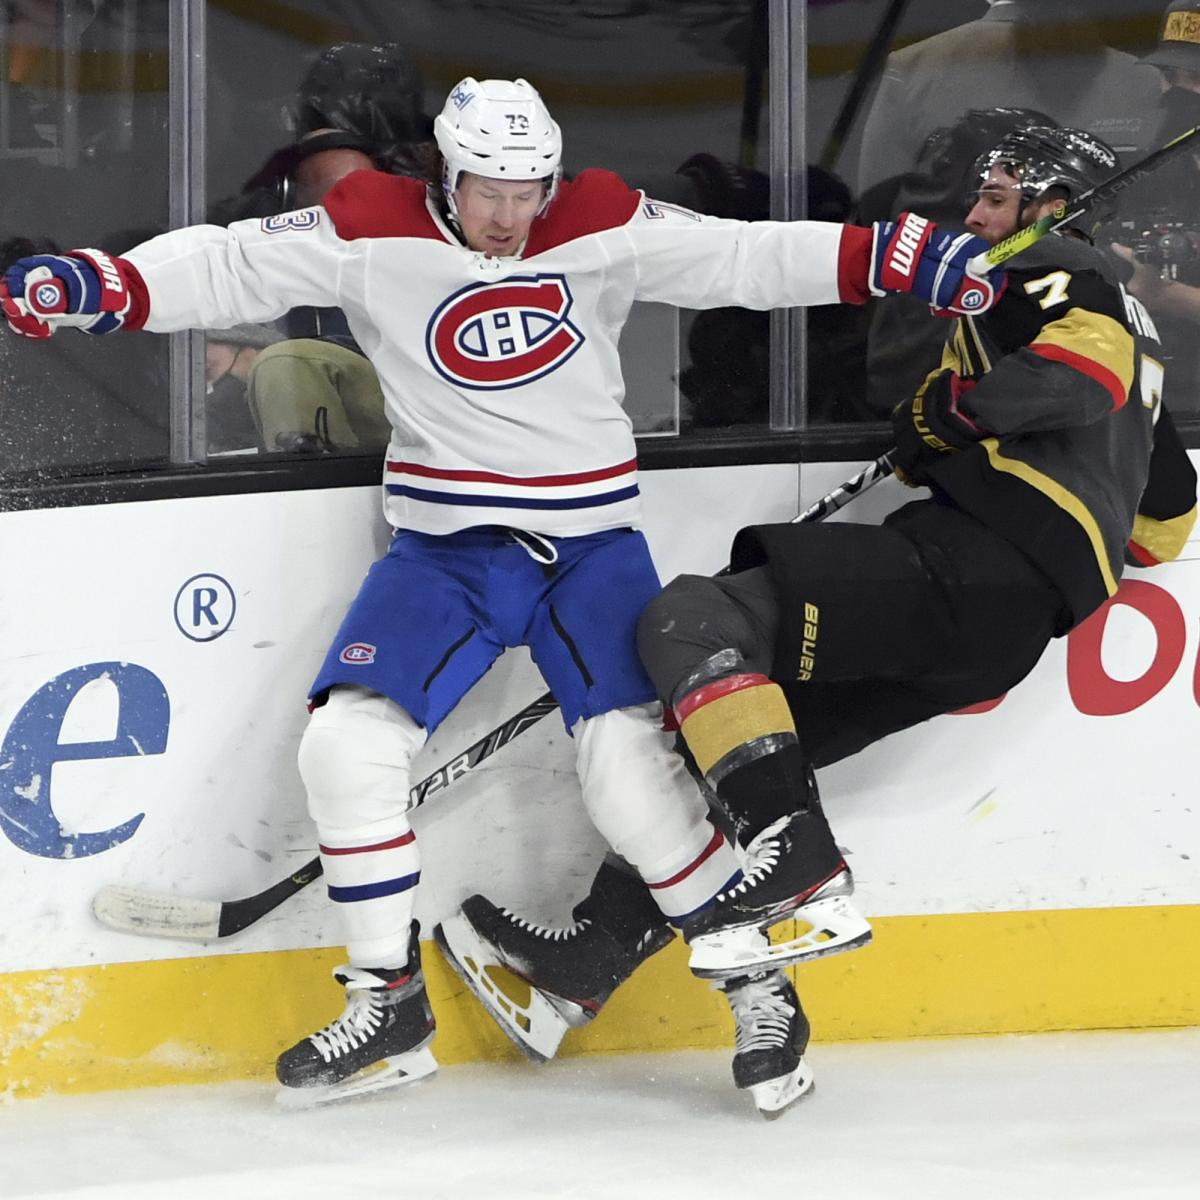 NHL Playoff Bracket 2021: Dates, TV Schedule, Game Times, Odds and Picks